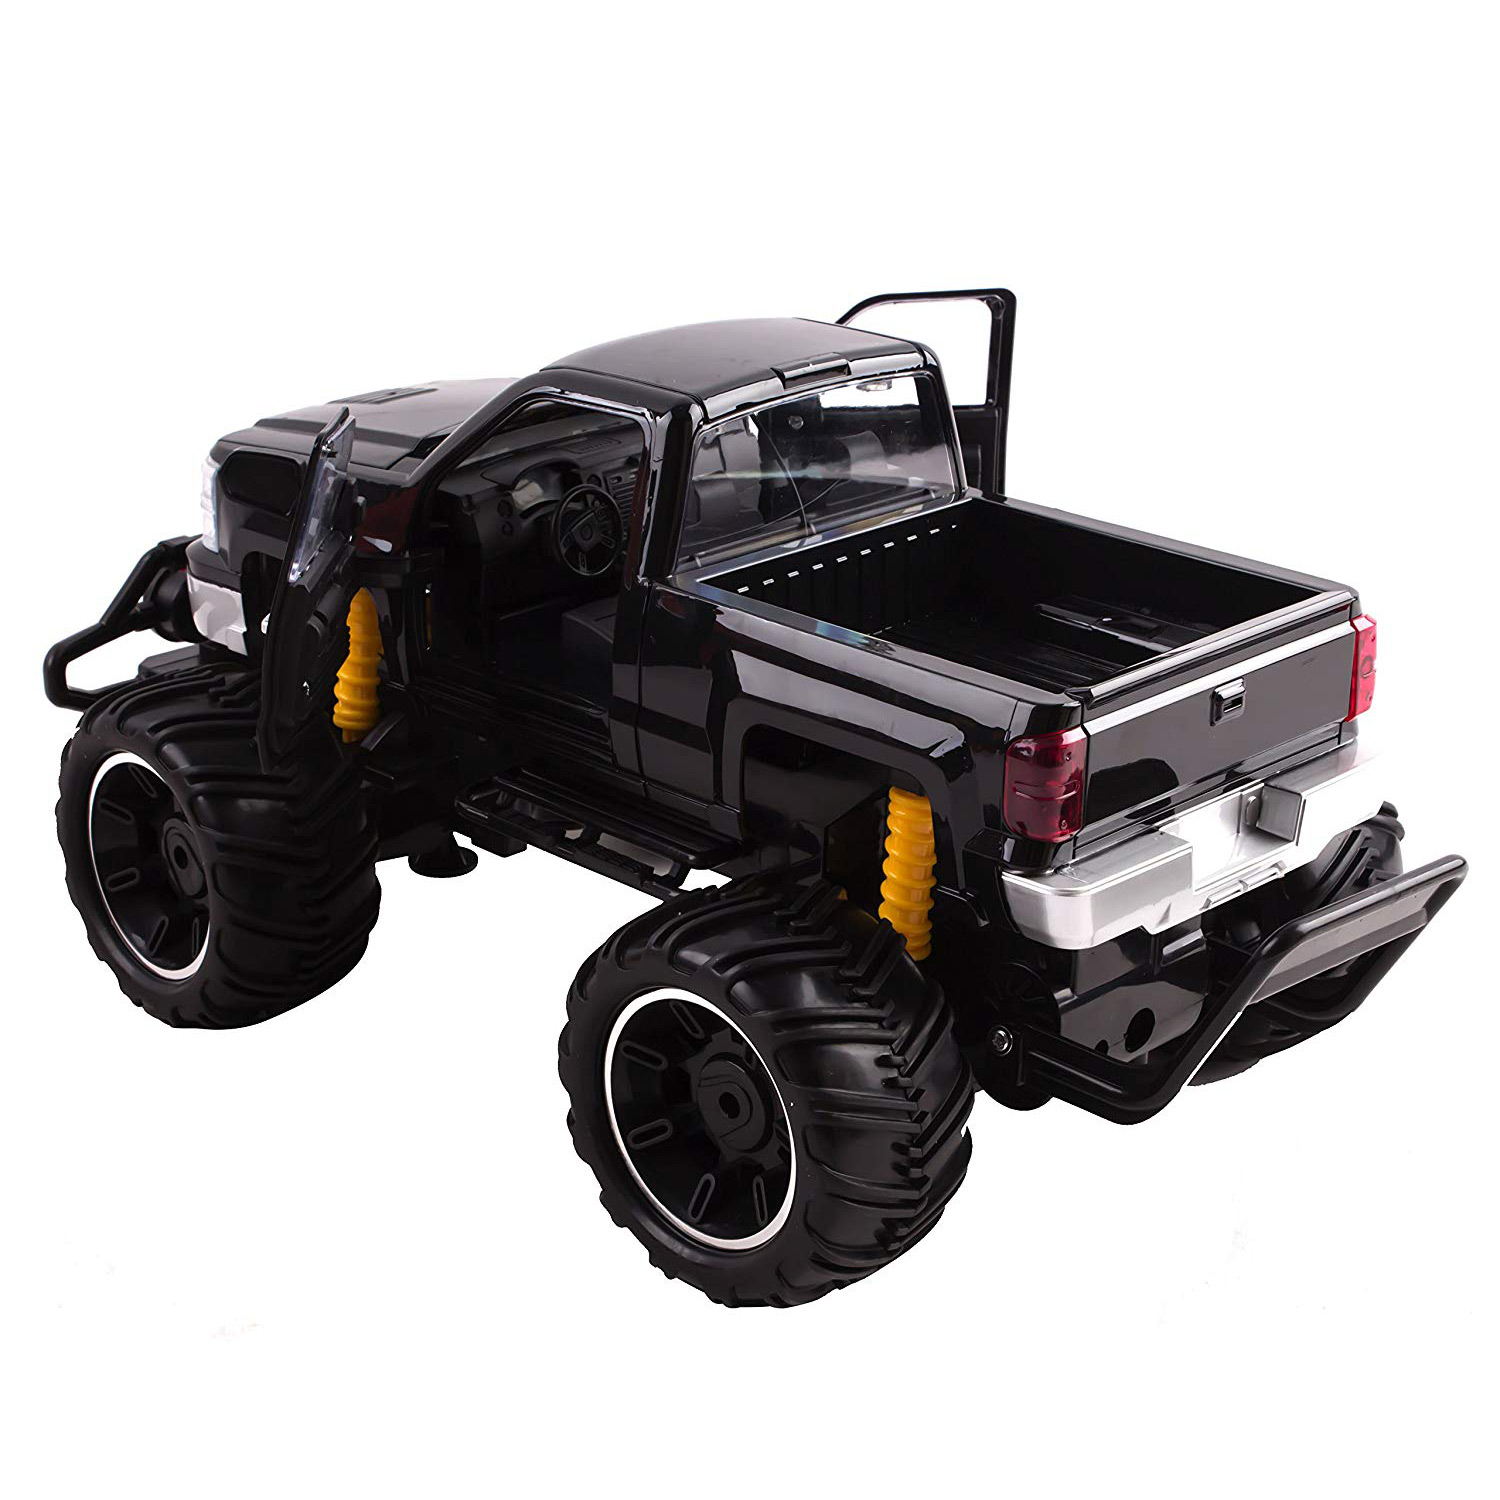 Rc Truck Big Wheel Beast Monster Truck Remote Control Doors Opening Car Light Up Led Headlights Ready To Run Includes Rechargeable Battery 1 14 Size Off Road Pick Up Buggy Toy Black Toyz X